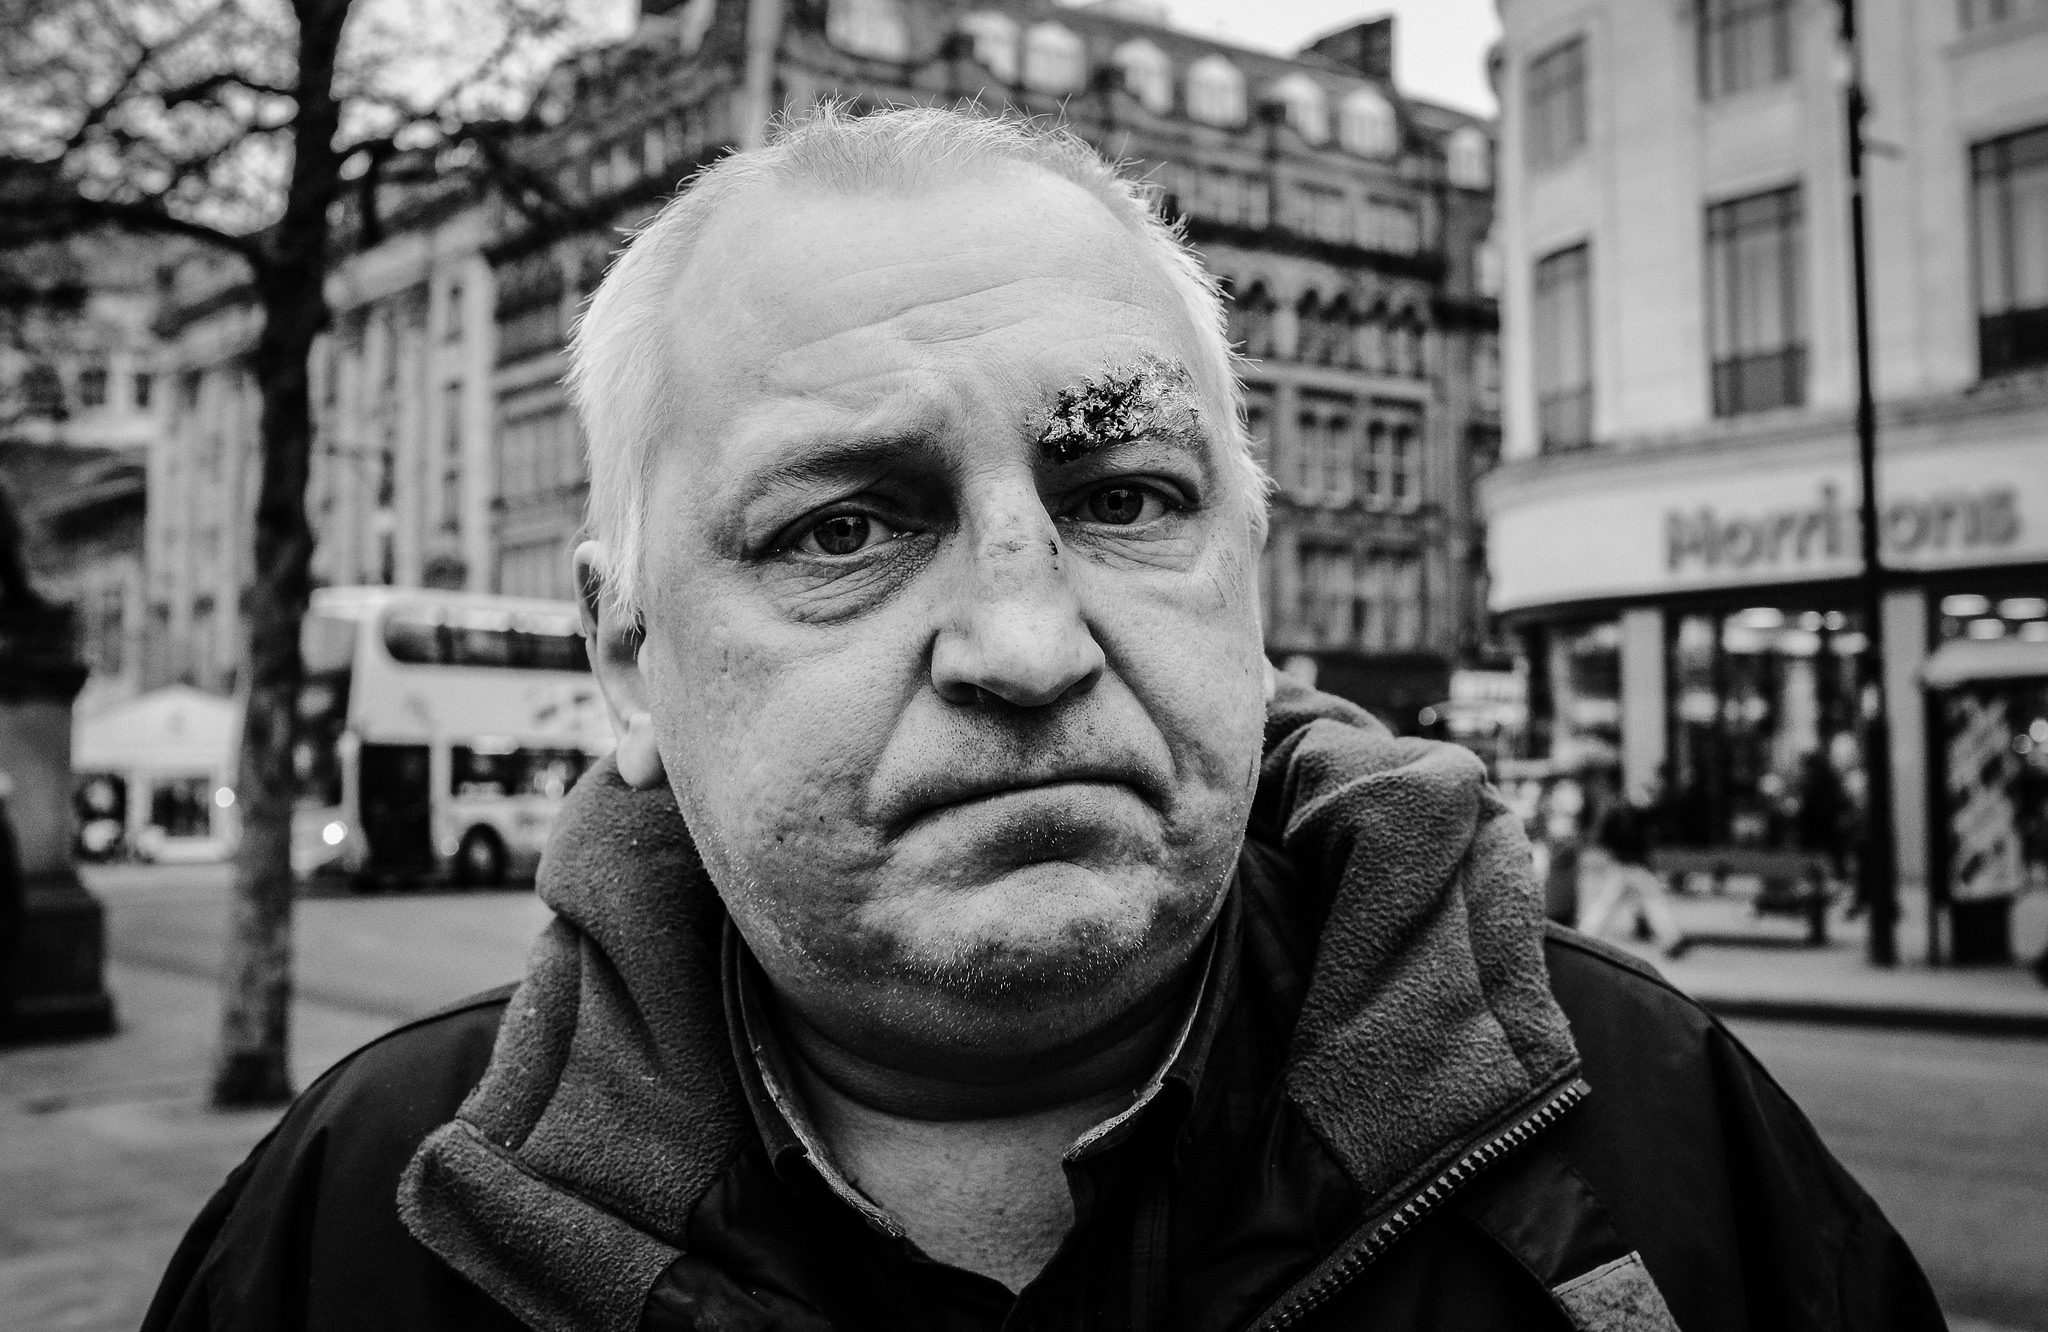 Image:keithvaughton, Faces of Manchester,  Flickr